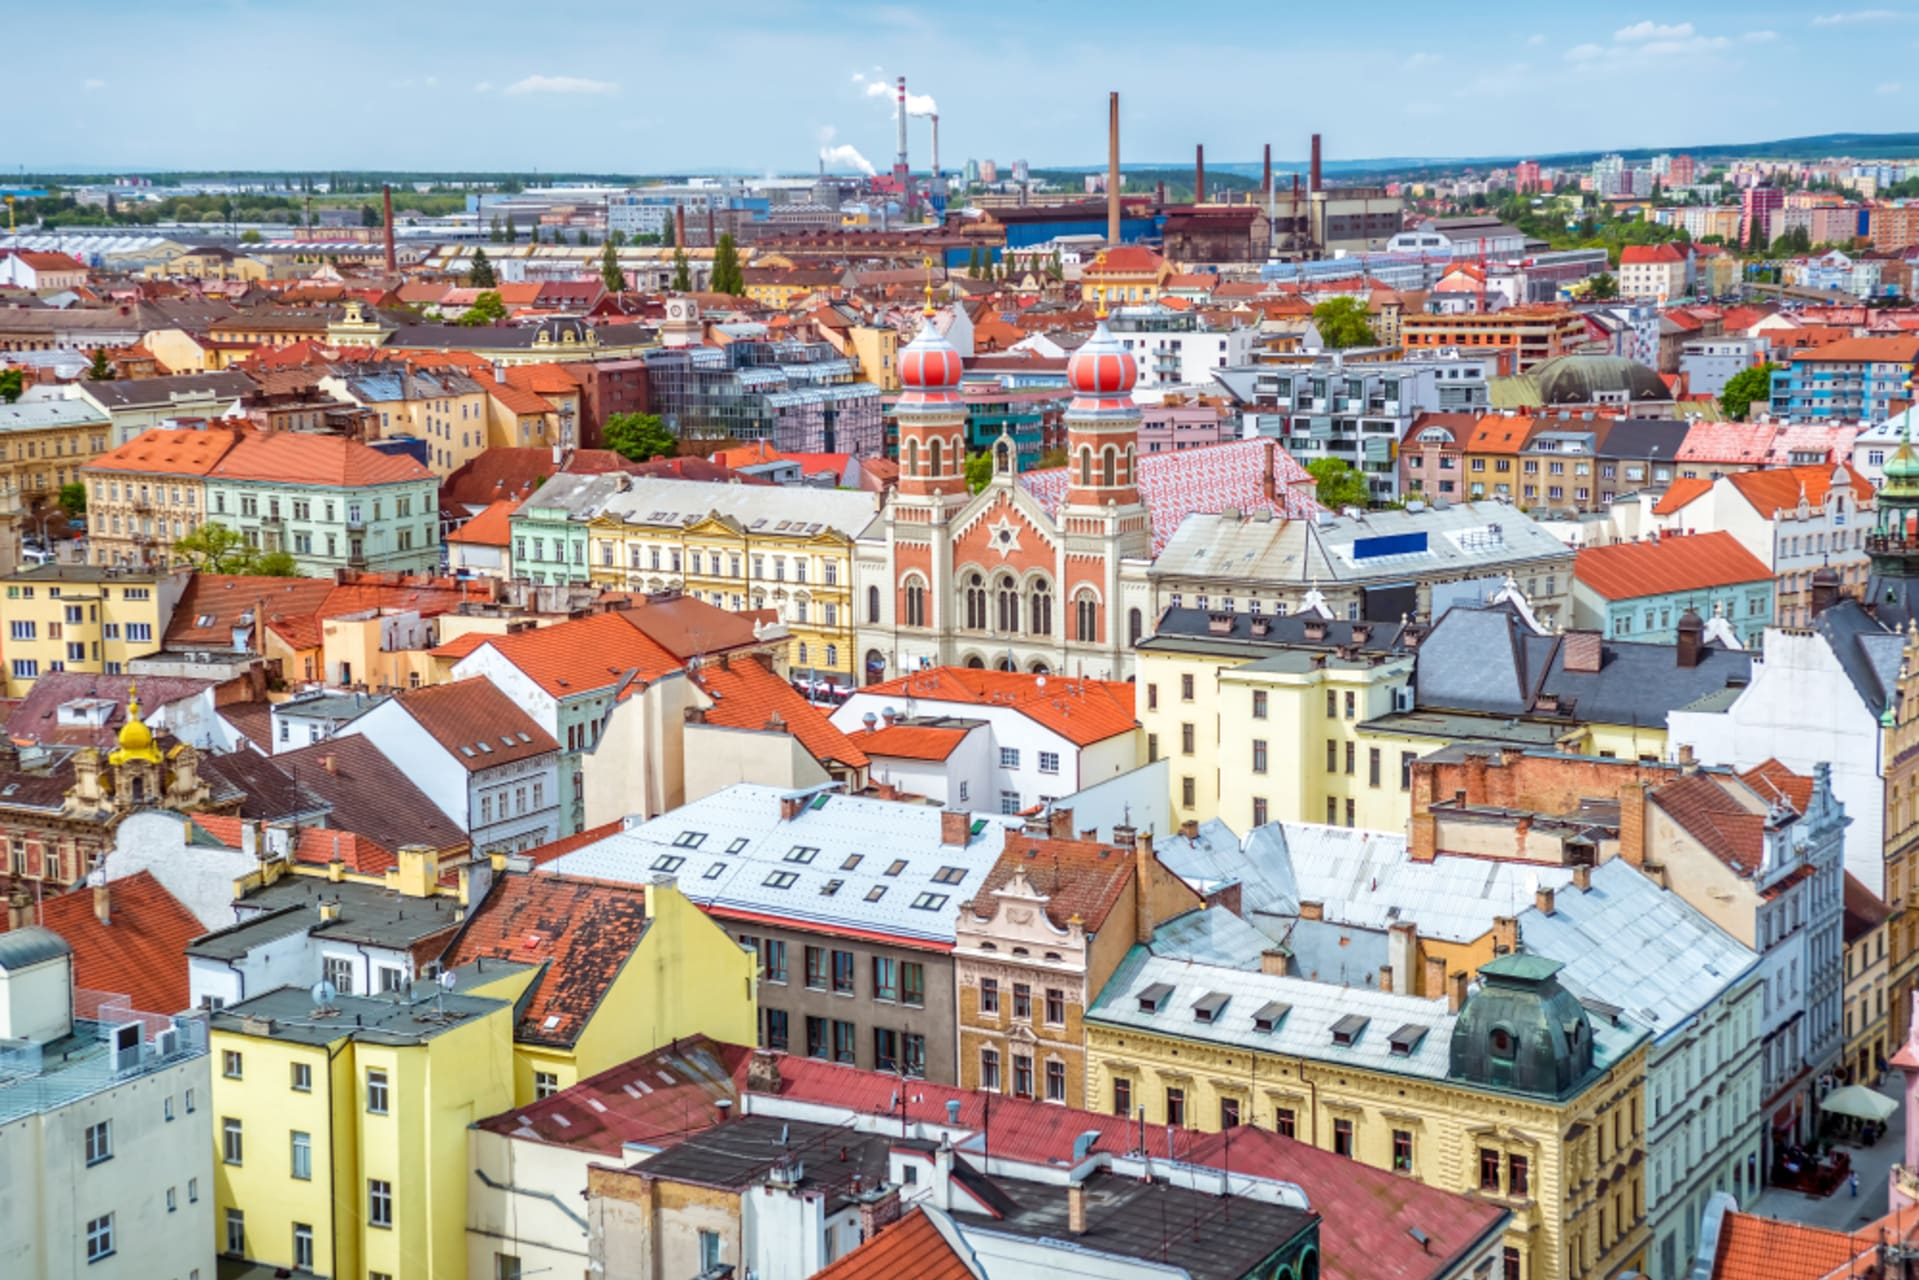 Pilsen - Pilsen-the city known not only for the beer Pilsner Urquell